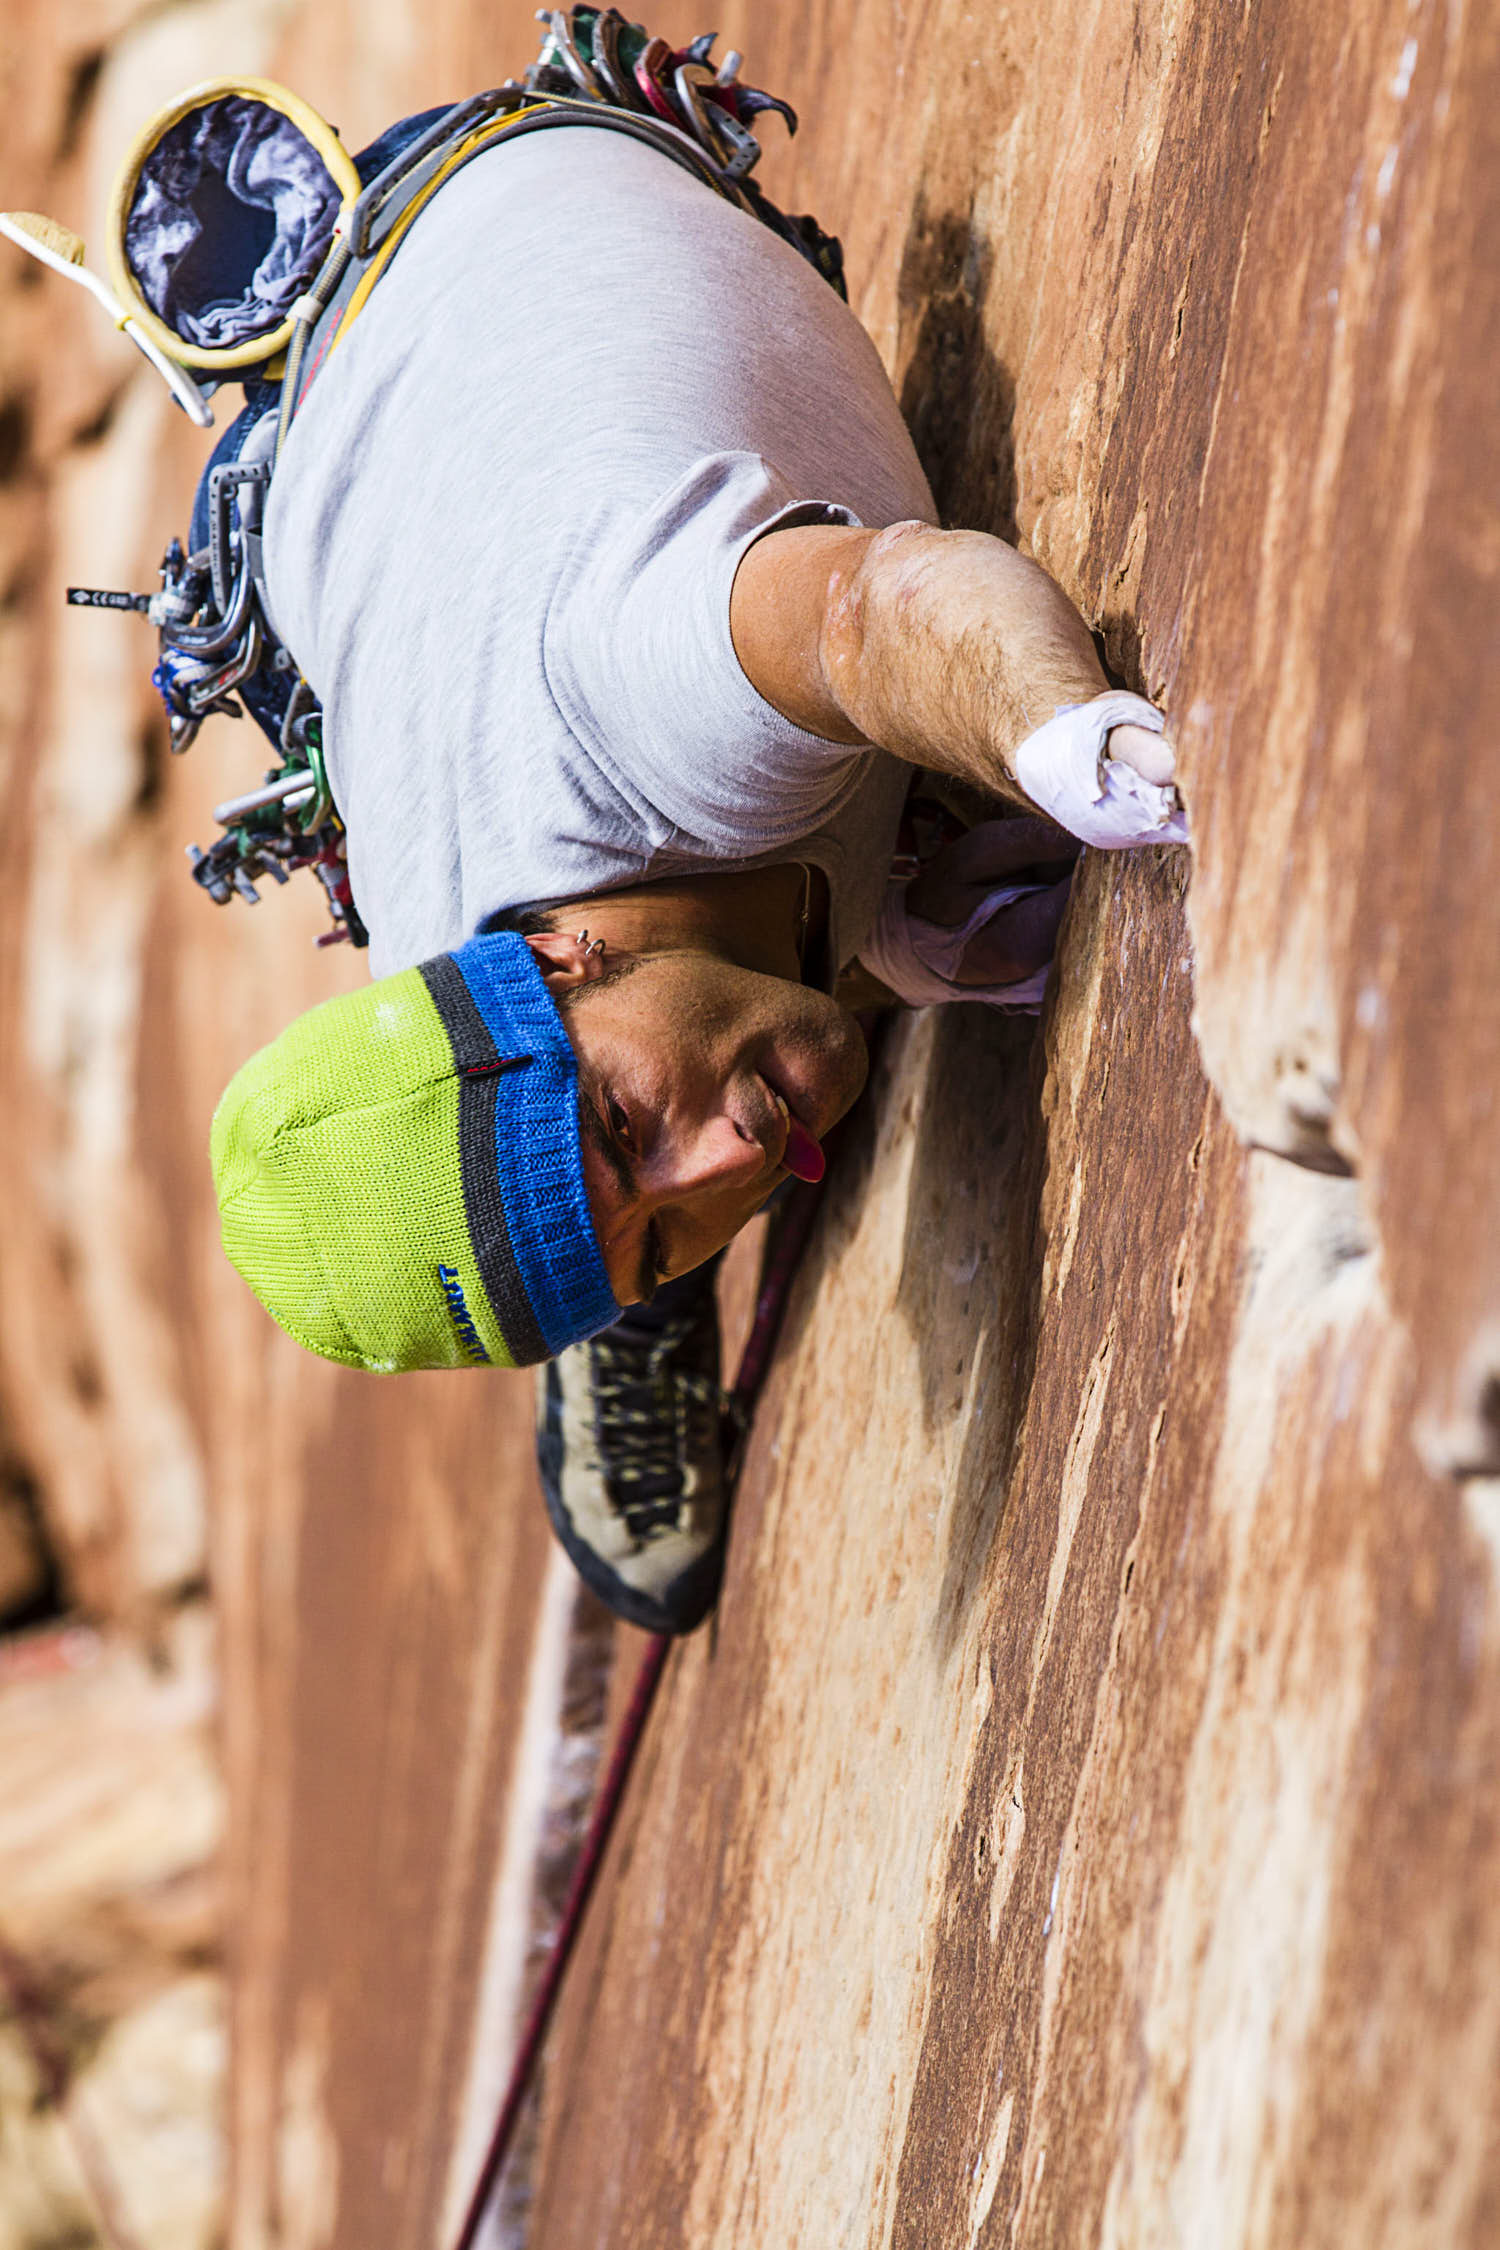 A young man rock climbing showing his tongue out of his mouth.